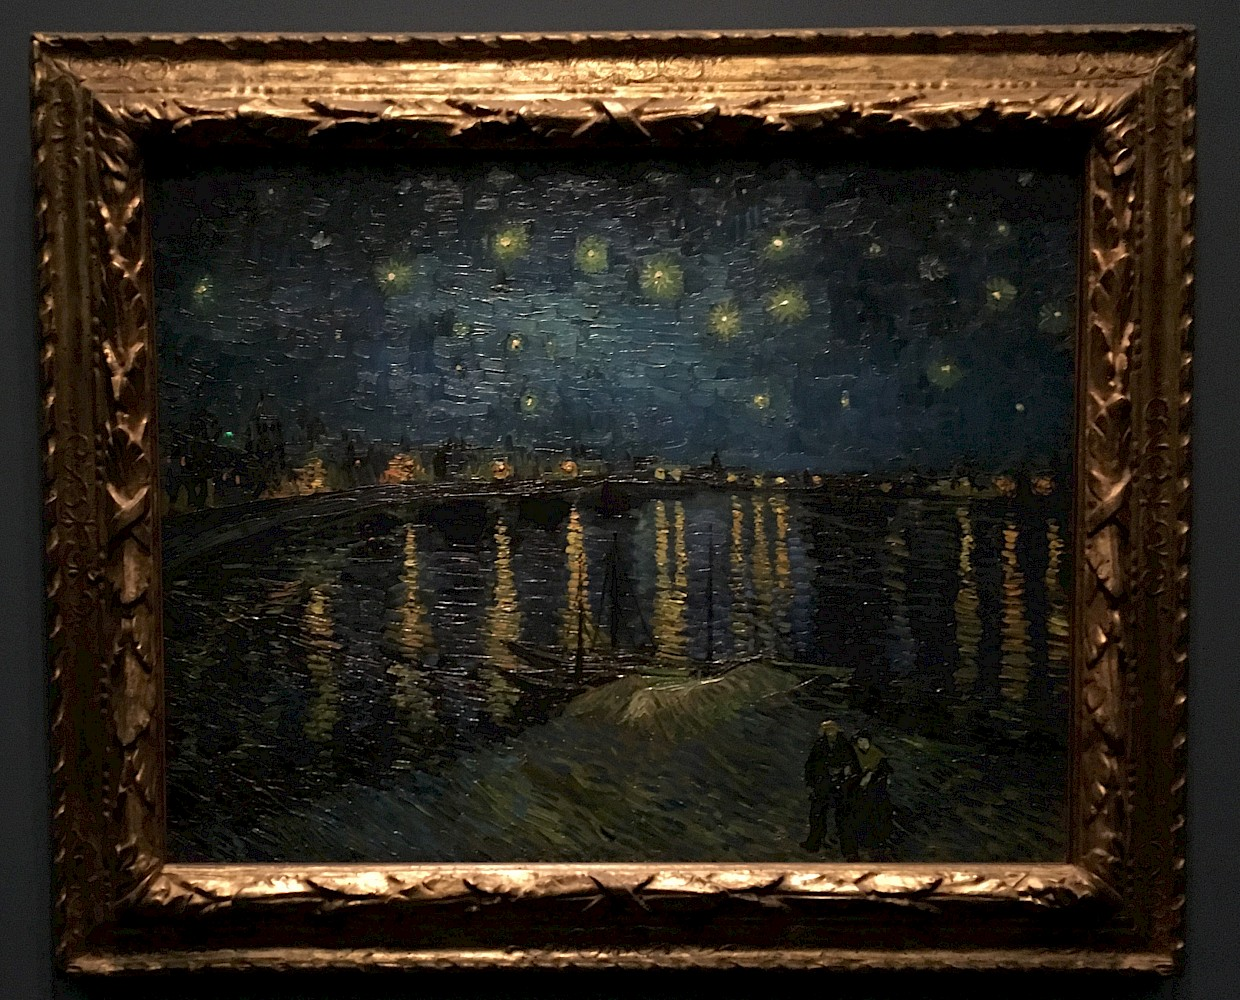 Starry Night Over the Rhine, Vincent Van Gogh